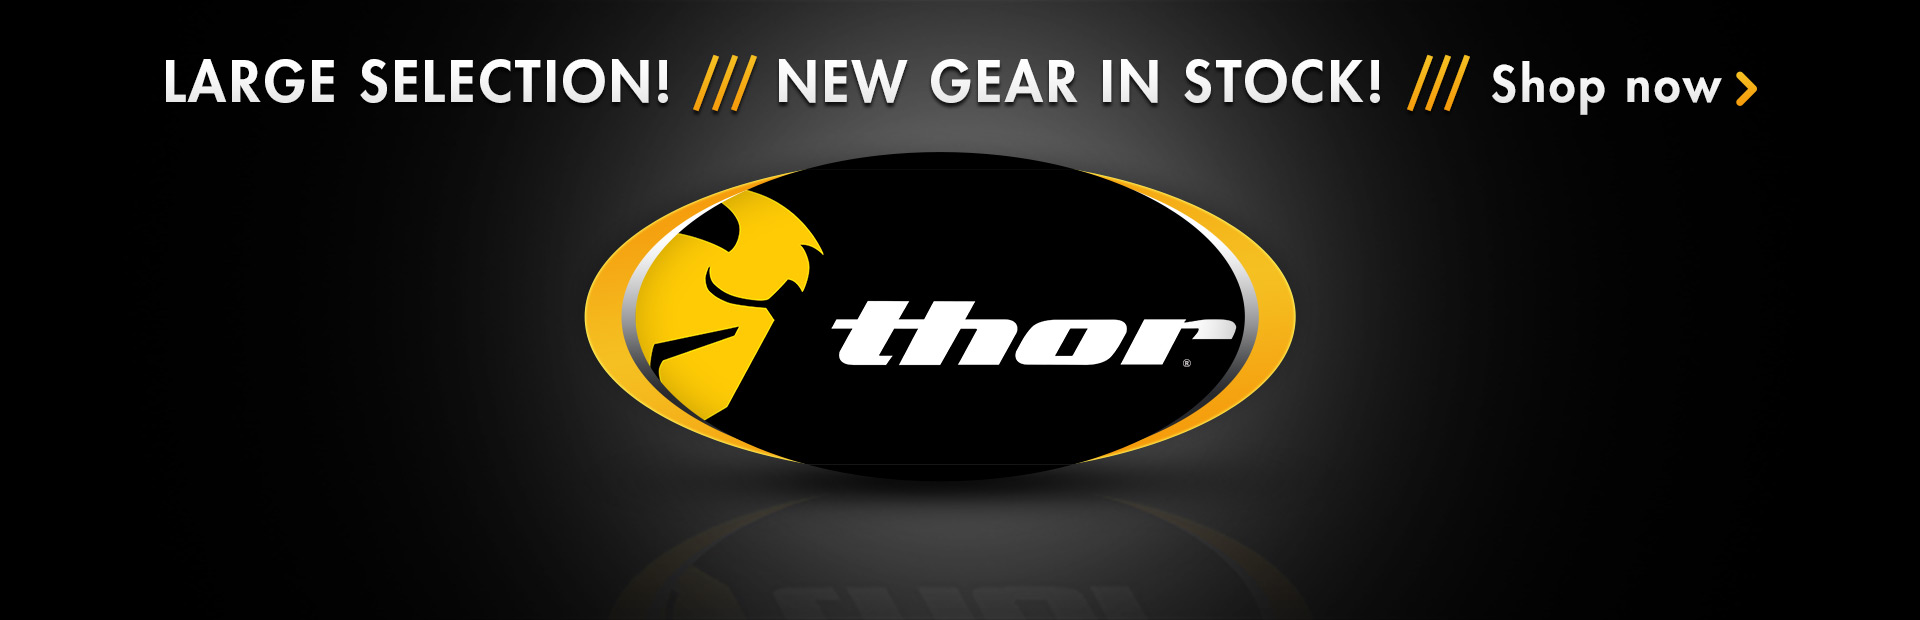 Shop for new Thor gear here.